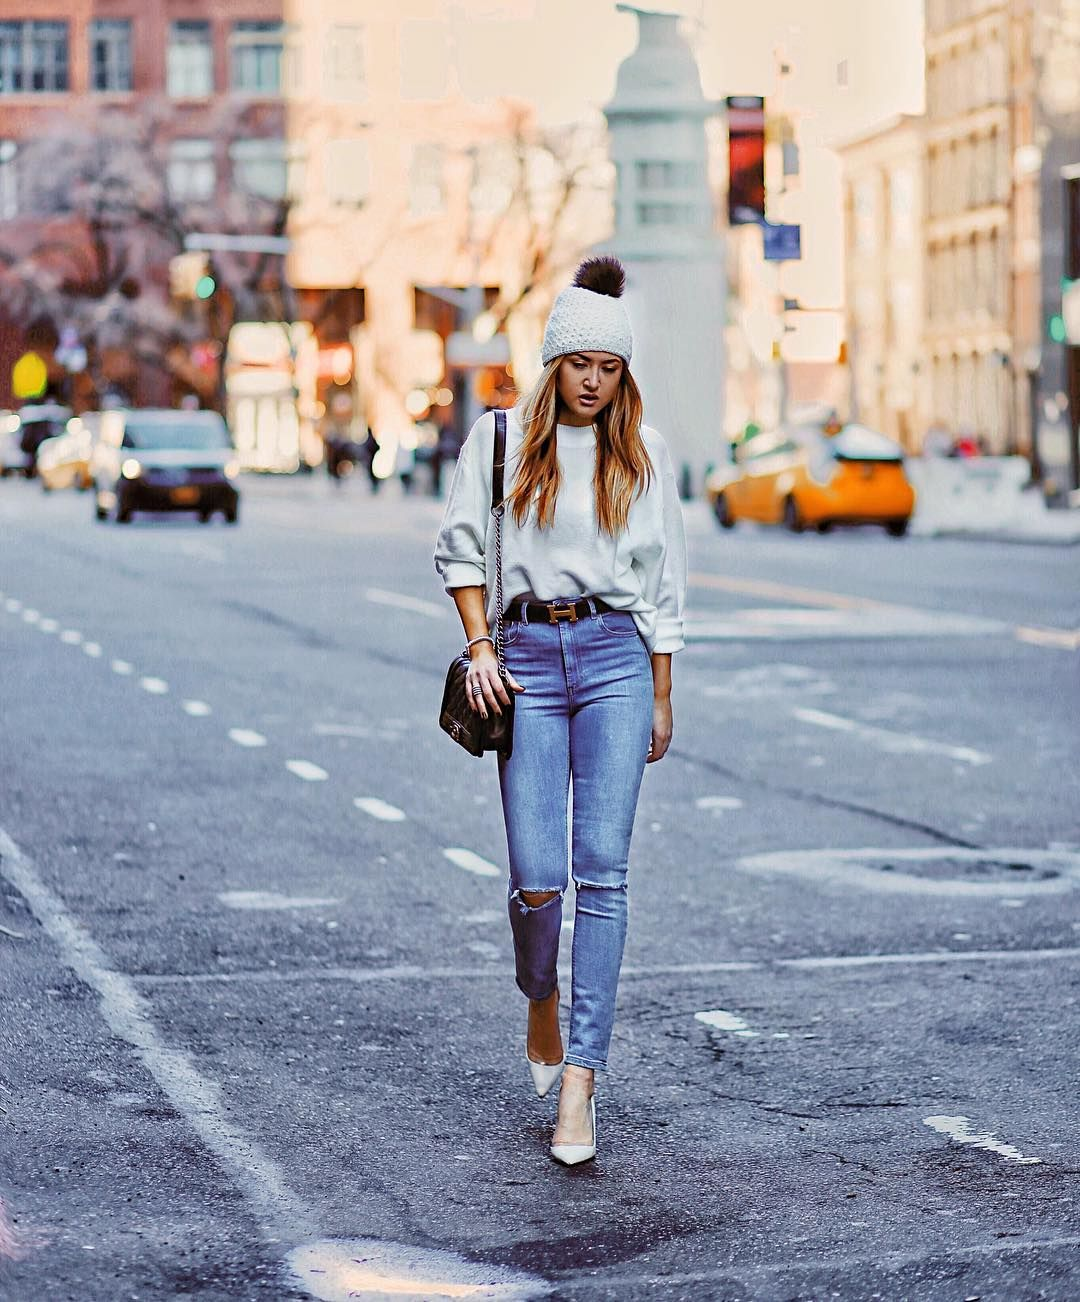 941a2c2a814 Fashion is my Forte  a simple NYC winter street style look wearing ripped  jeans